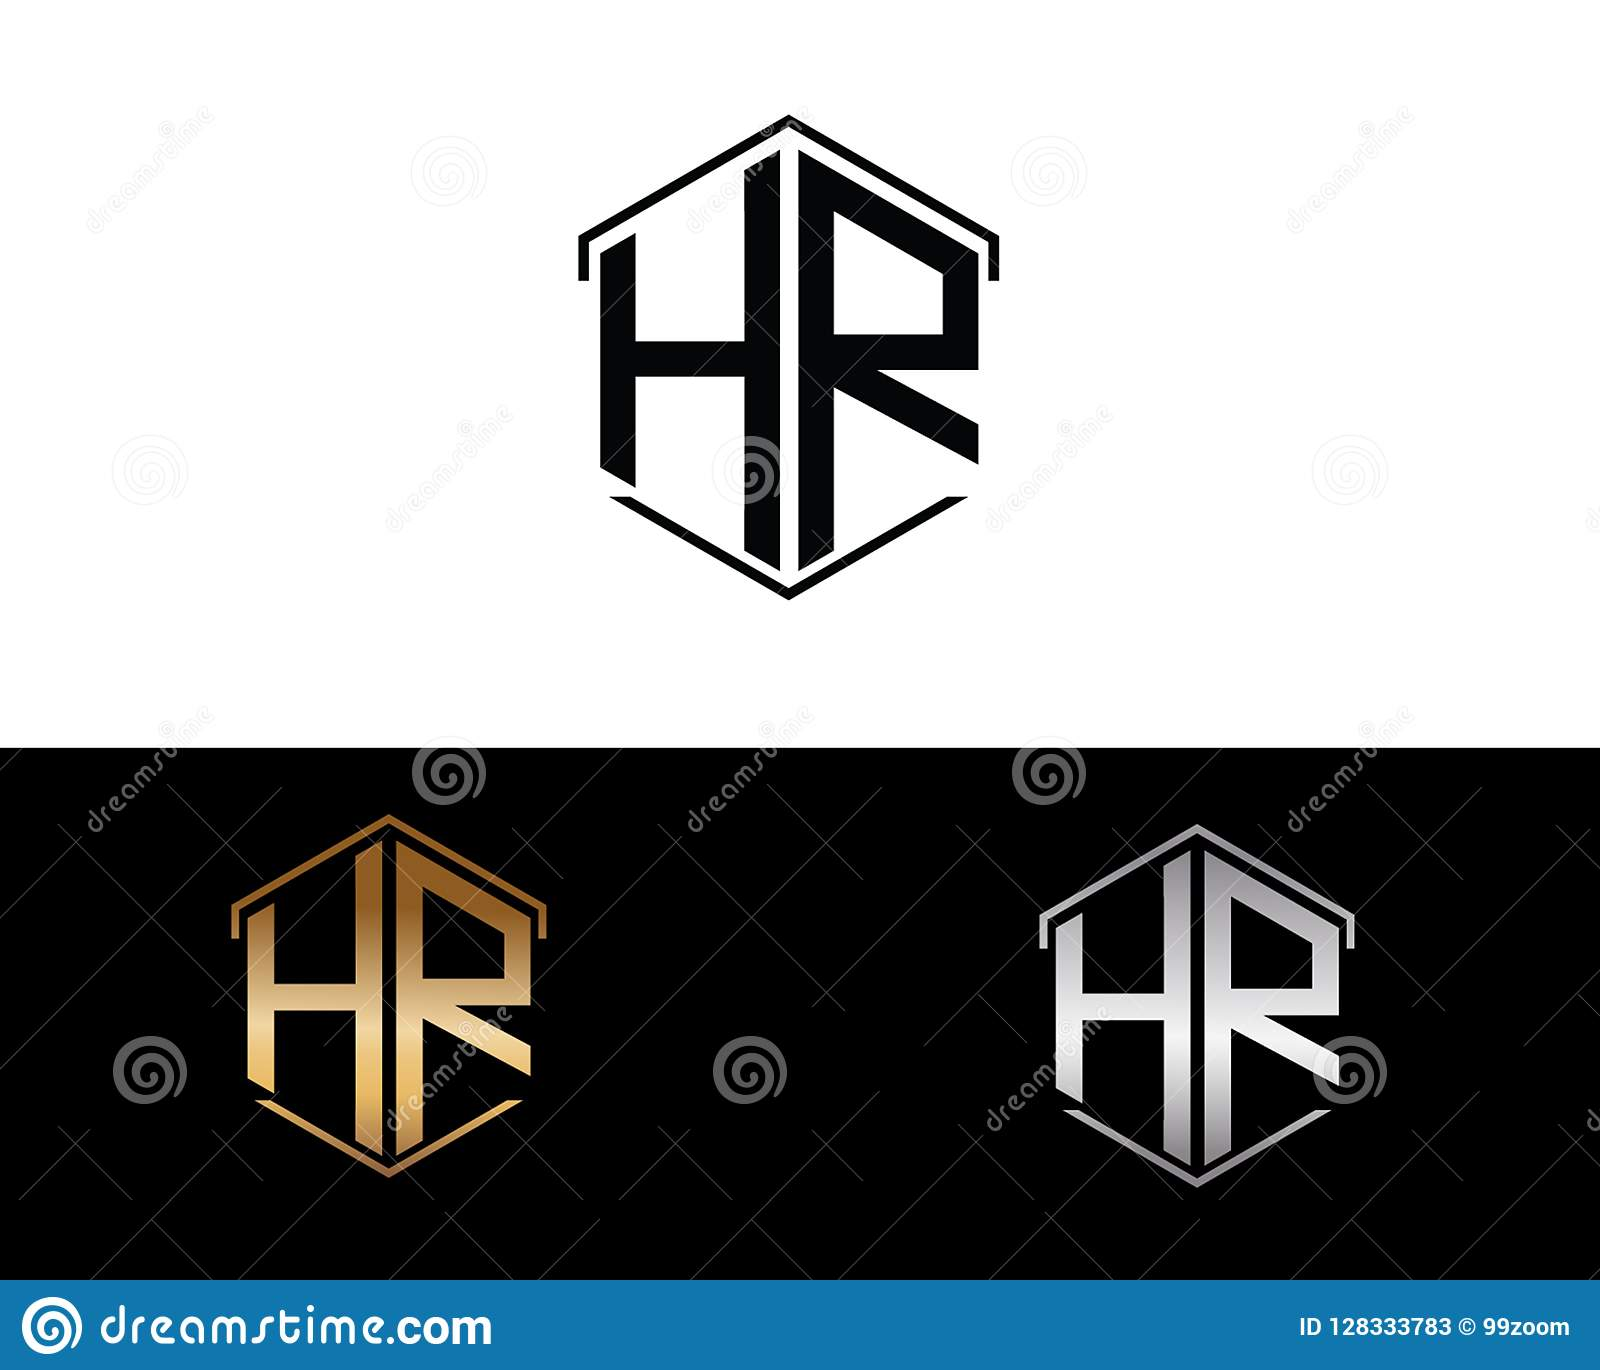 HR letters linked with hexagon shape logo